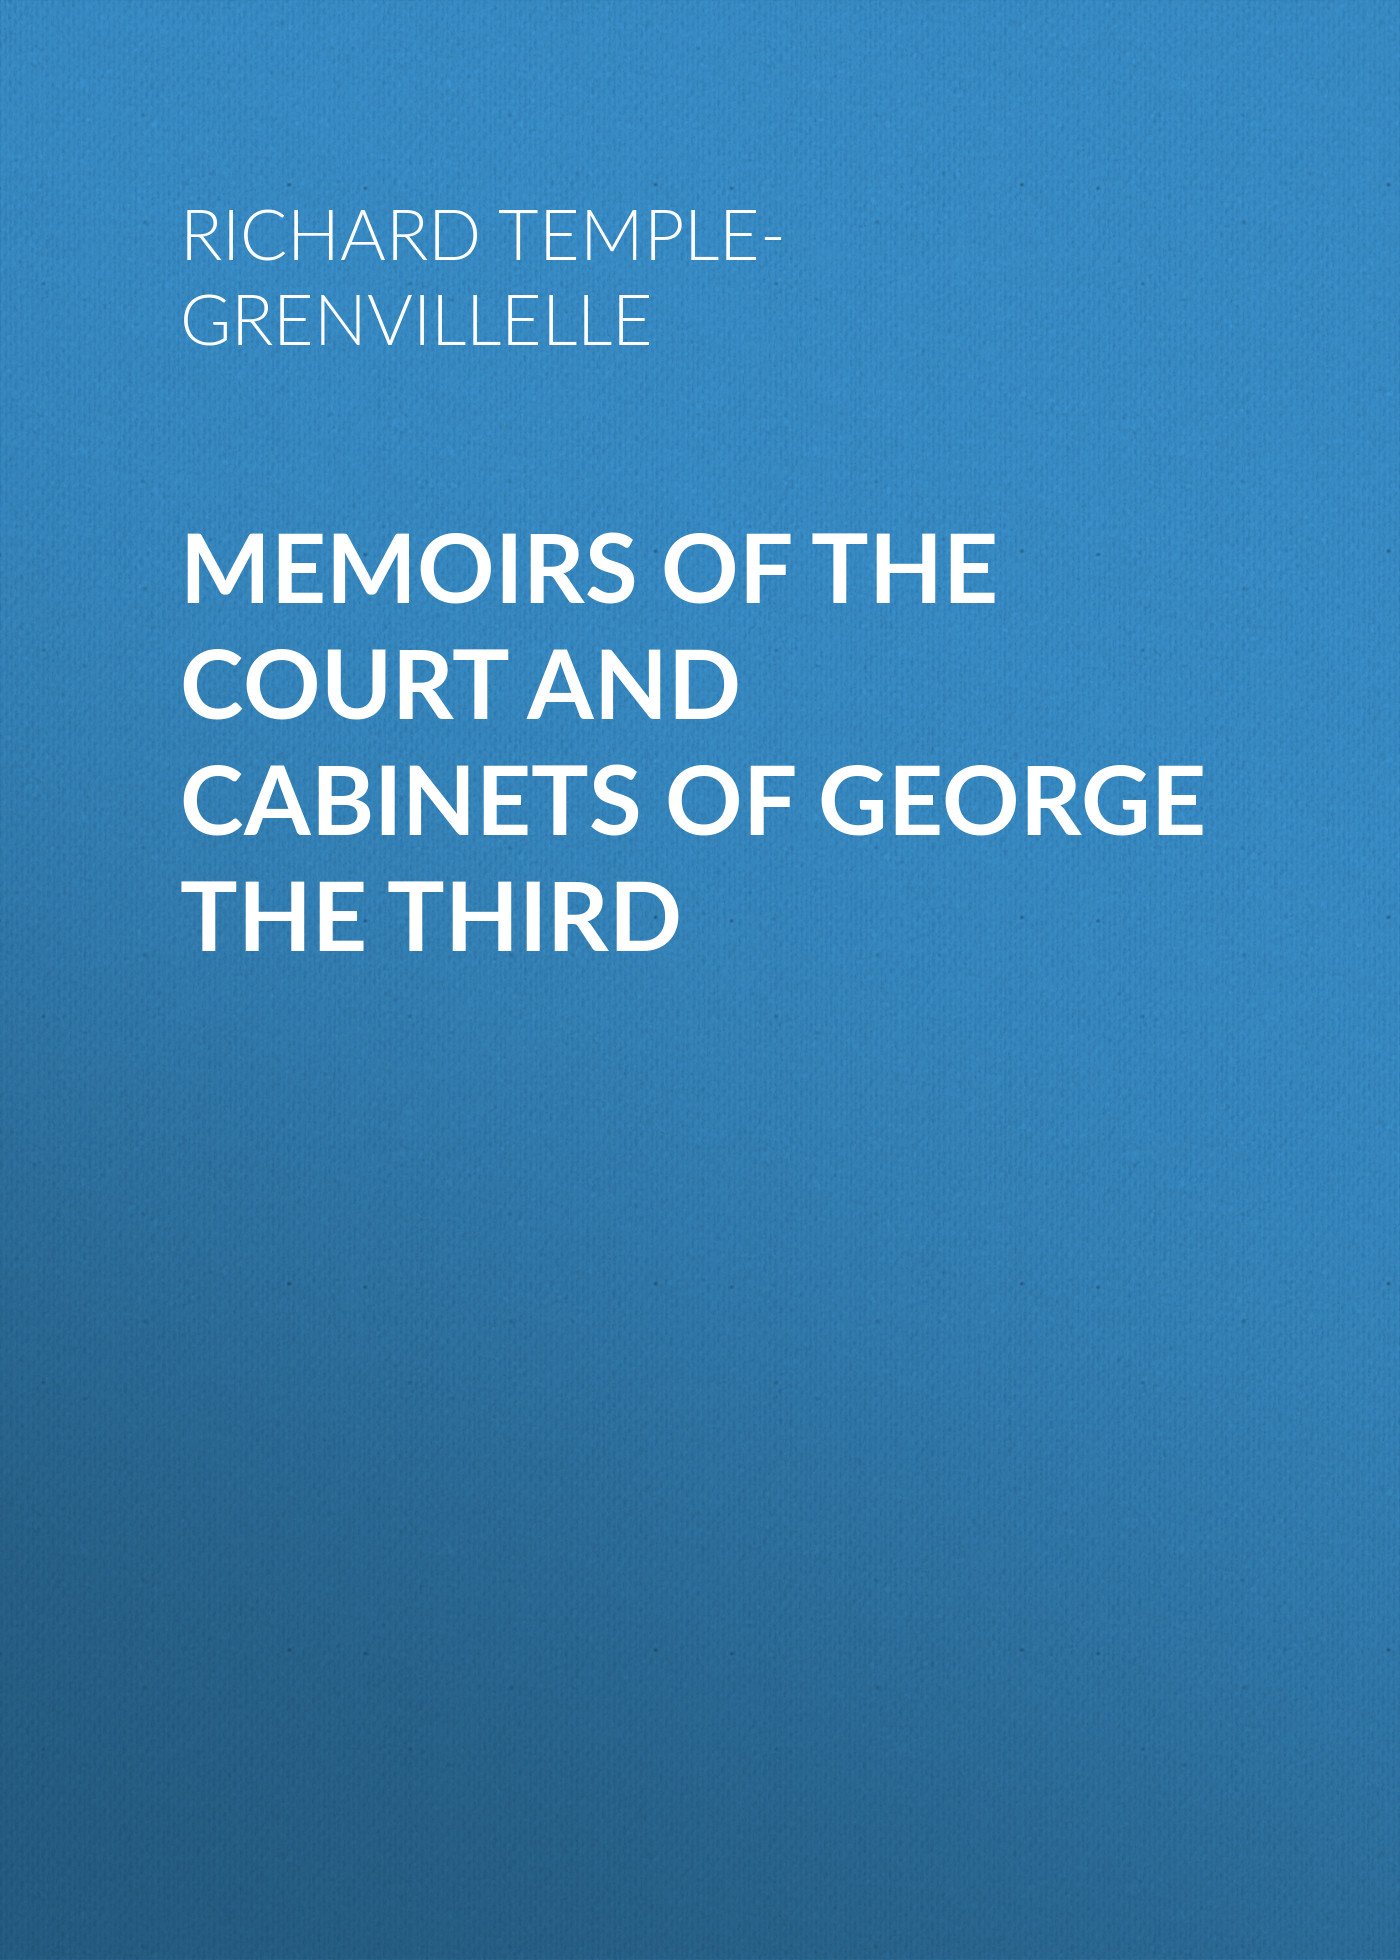 Richard Temple-Grenvillelle Memoirs of the Court and Cabinets of George the Third george gordon byron childe harold s pilgrimage canto the third